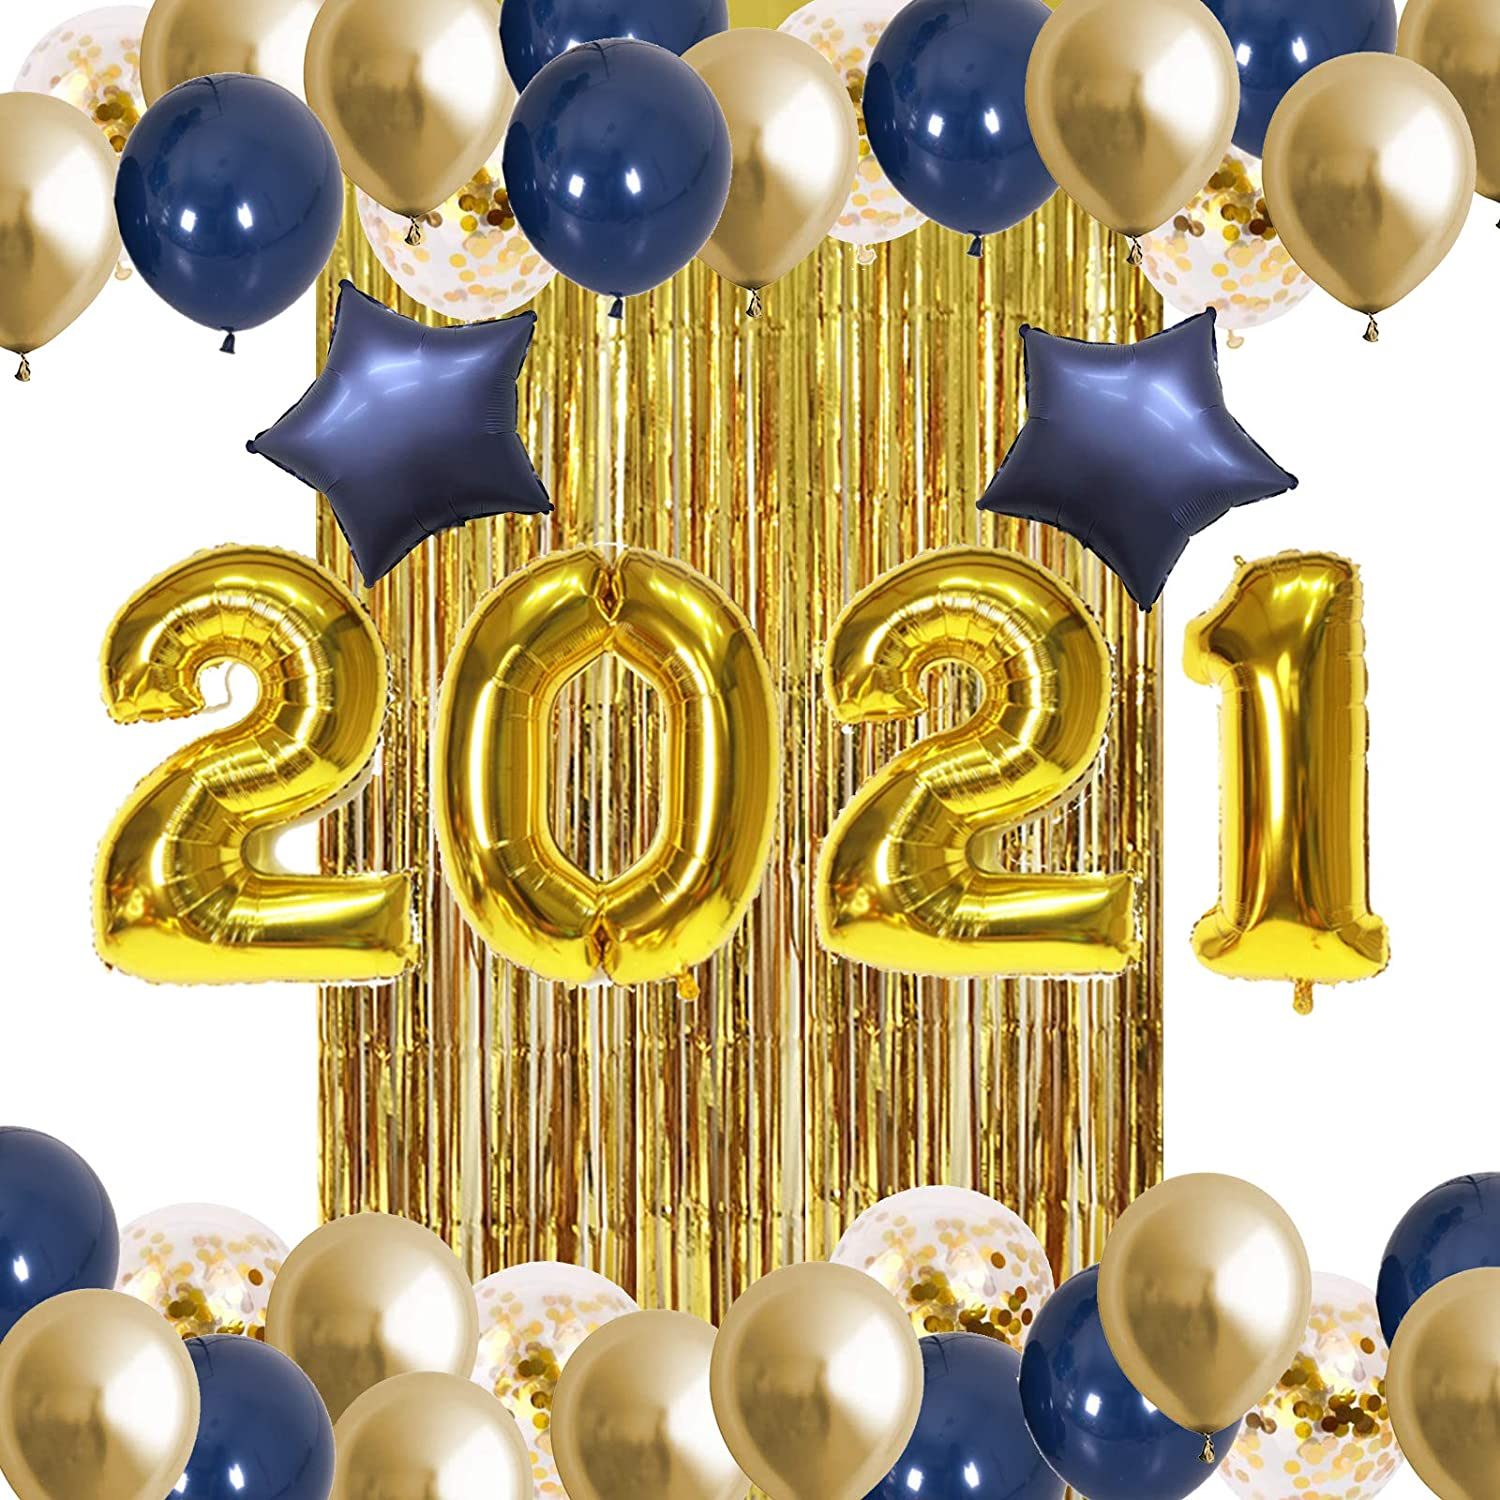 ATFUNSHOP 2021 New Year Party Decorations 32